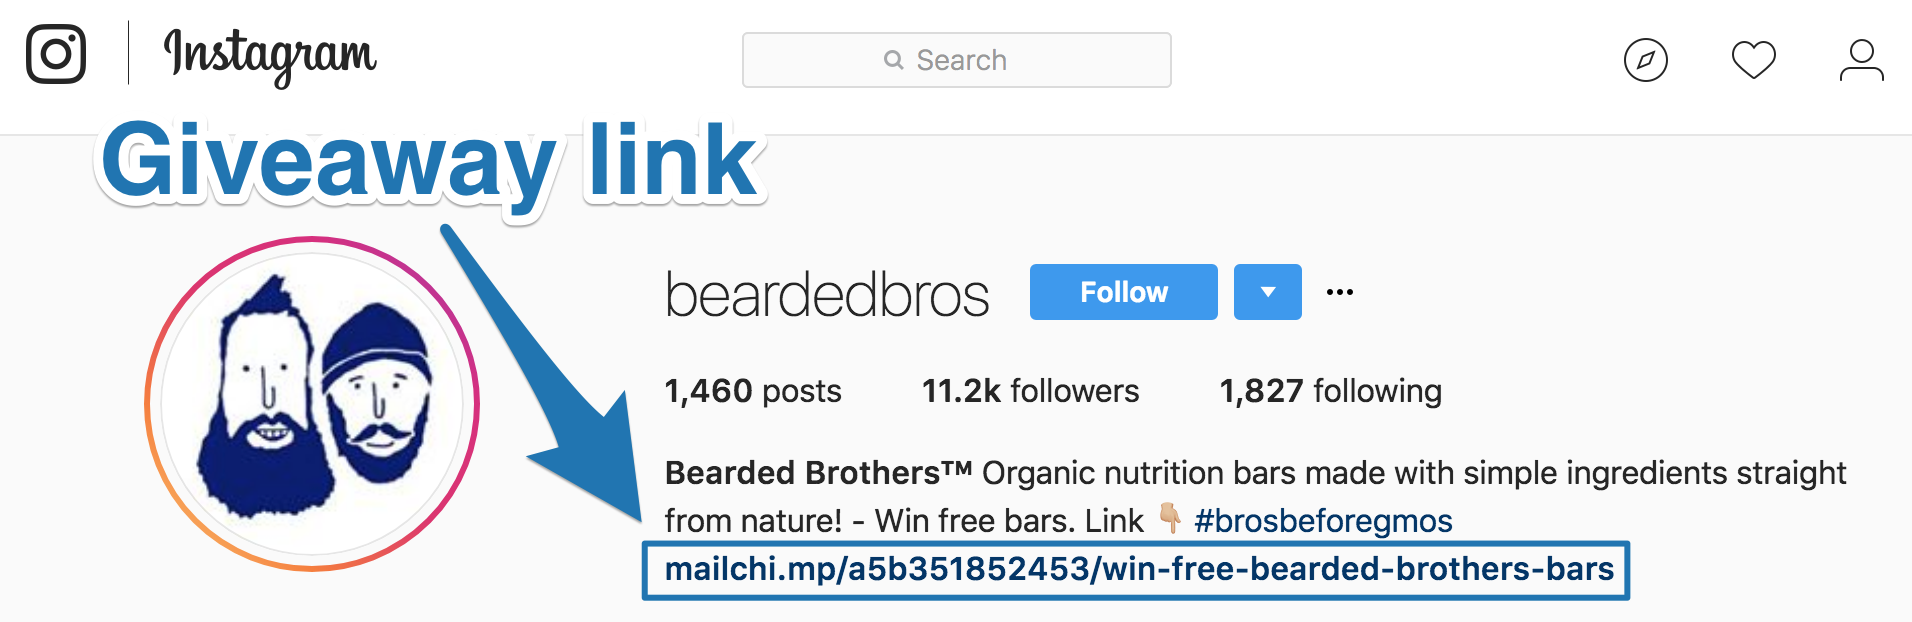 Screenshot showing the bearded brothers